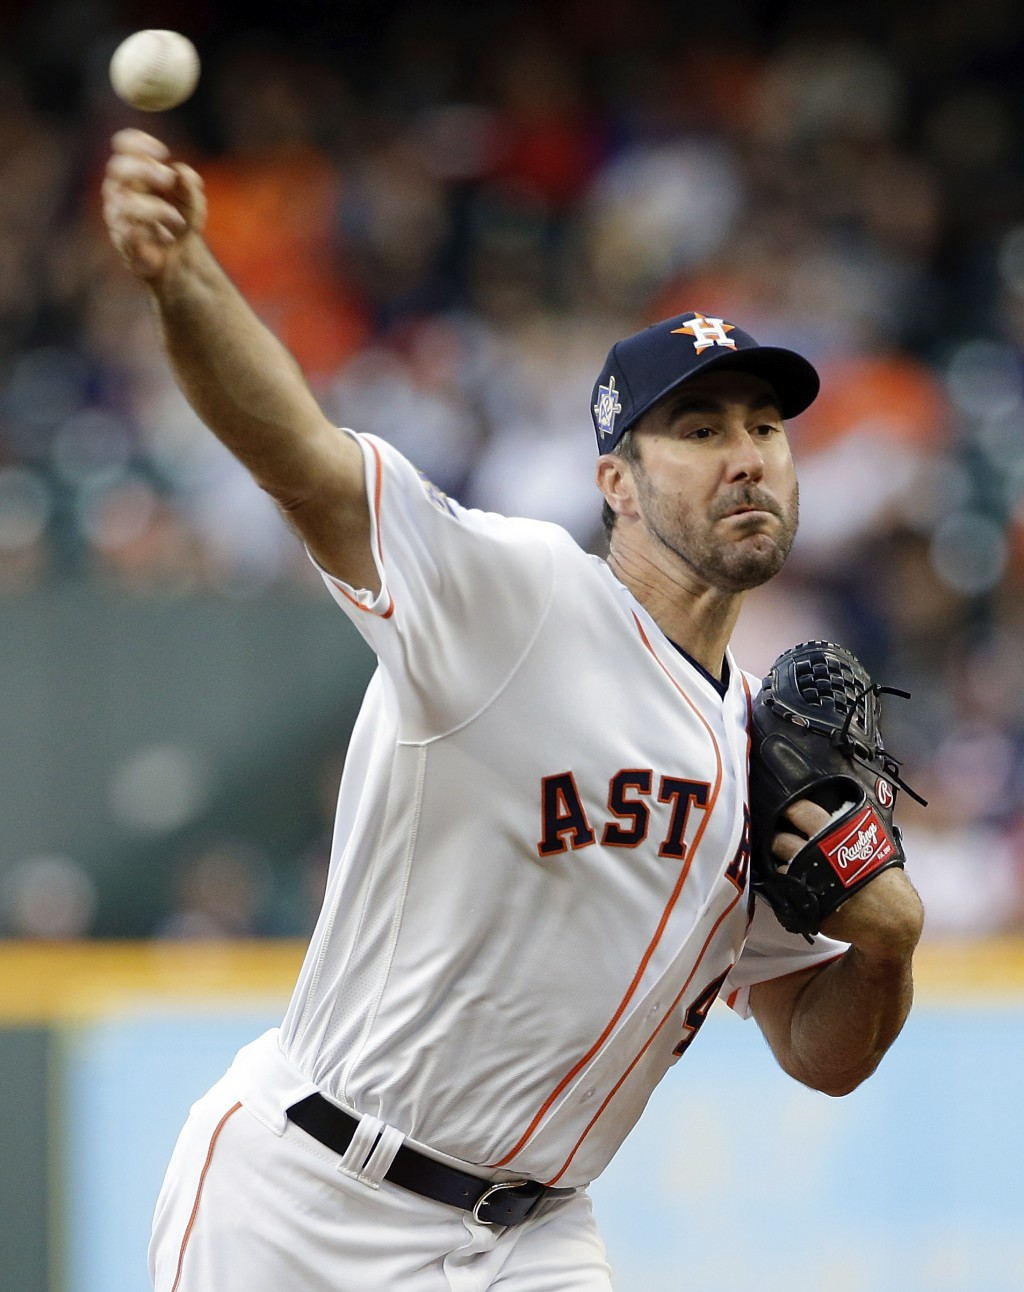 Houston Astros' starting pitcher Justin Verlander throws against the Texas Rangers during the first inning of a baseball game Sunday, April 15, 2018,